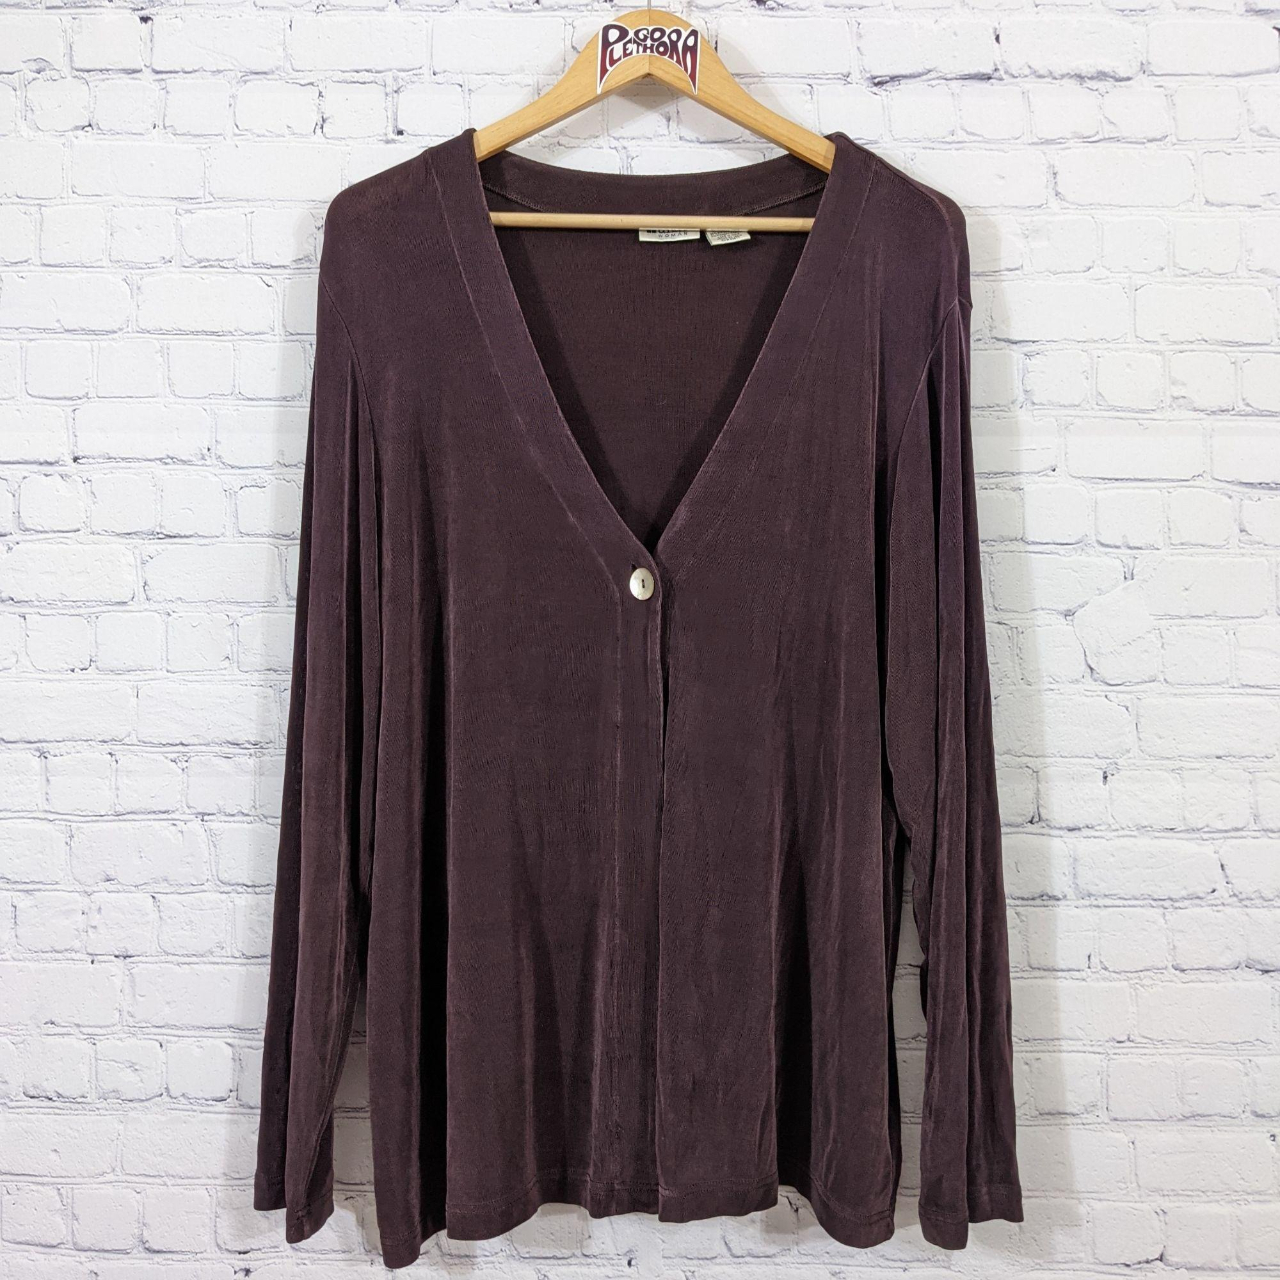 Product Image 1 - Units Woman 1-Button Cardigan Brown